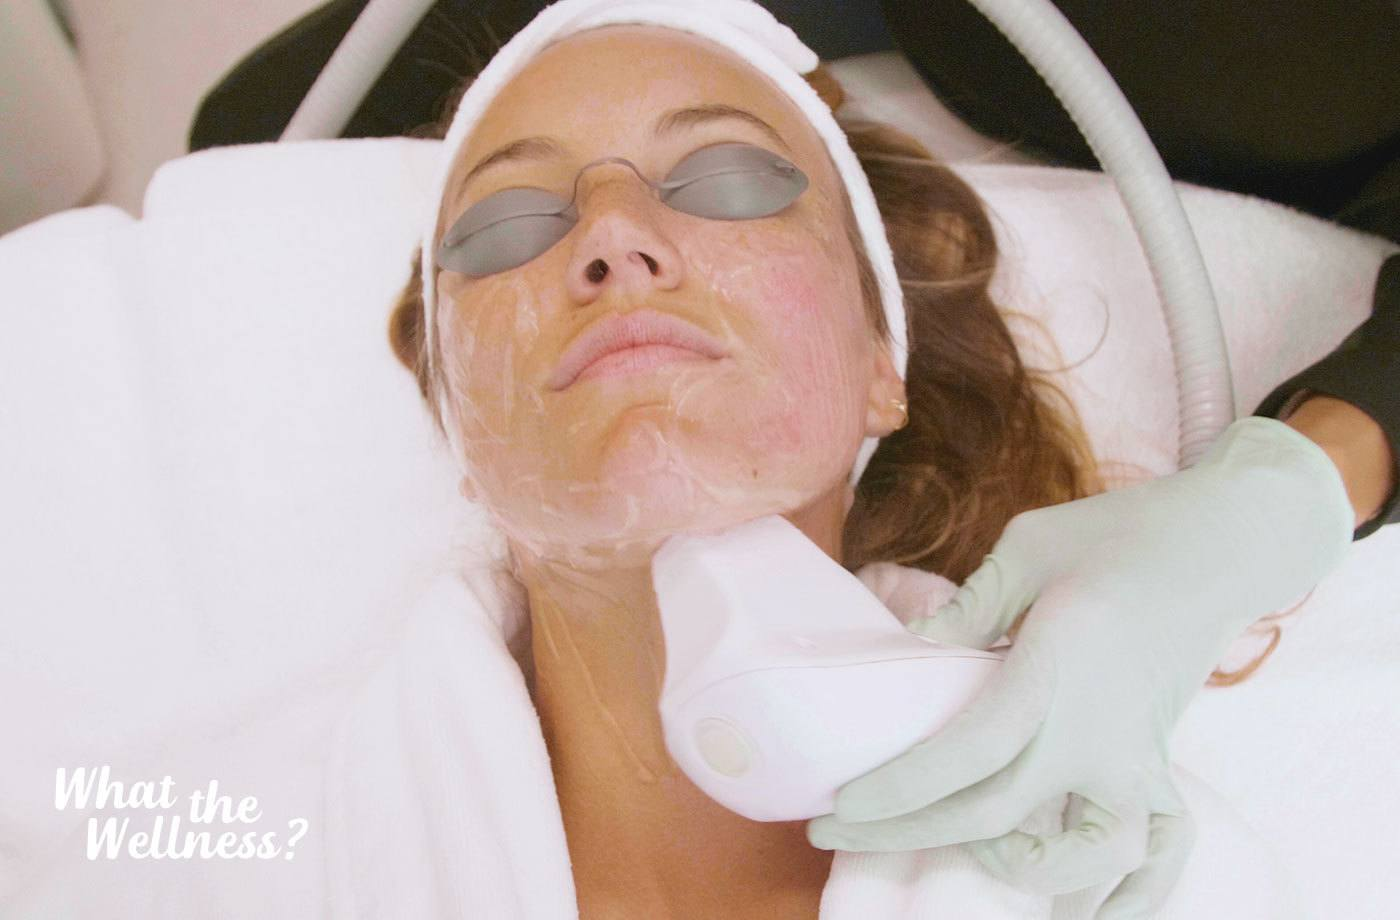 Watch one of the most expensive facials in NYC | Well+Good